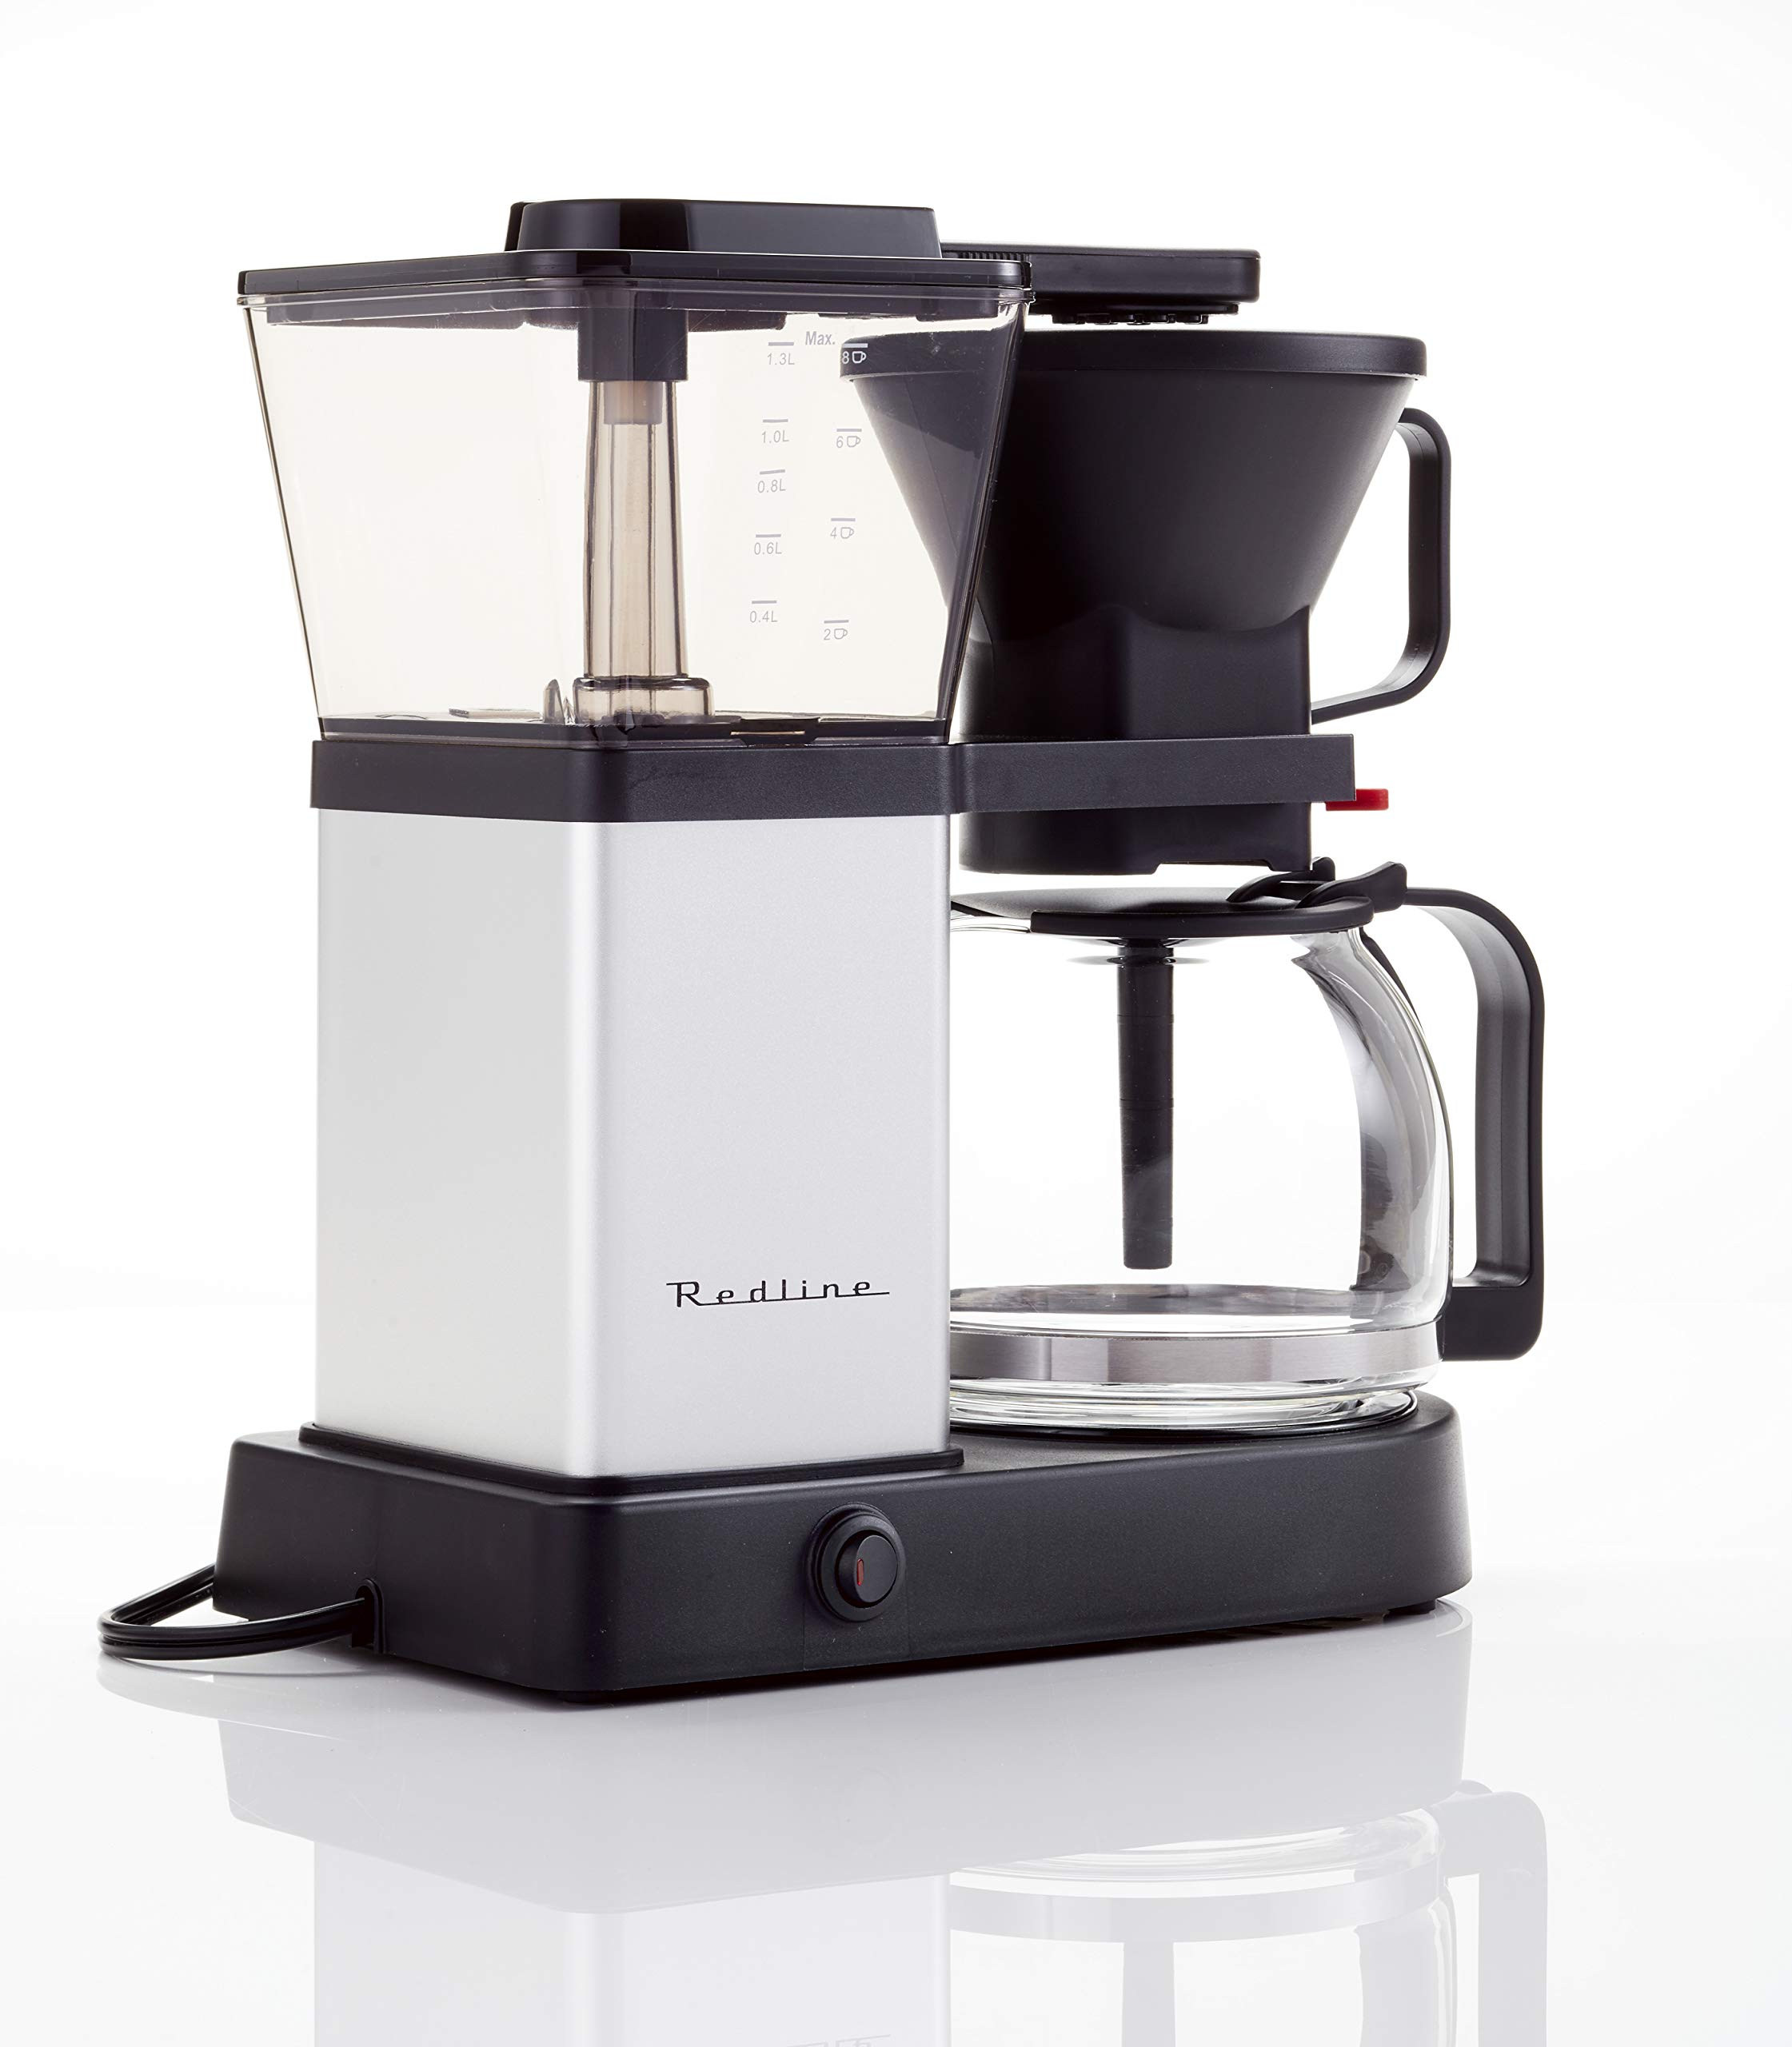 Redline MK1 8 Cup Coffee Brewer with Glass Carafe, Hot Plate and Pre-Infusion Mode (Summer 2018 Refresh) by Redline Coffee (Image #3)